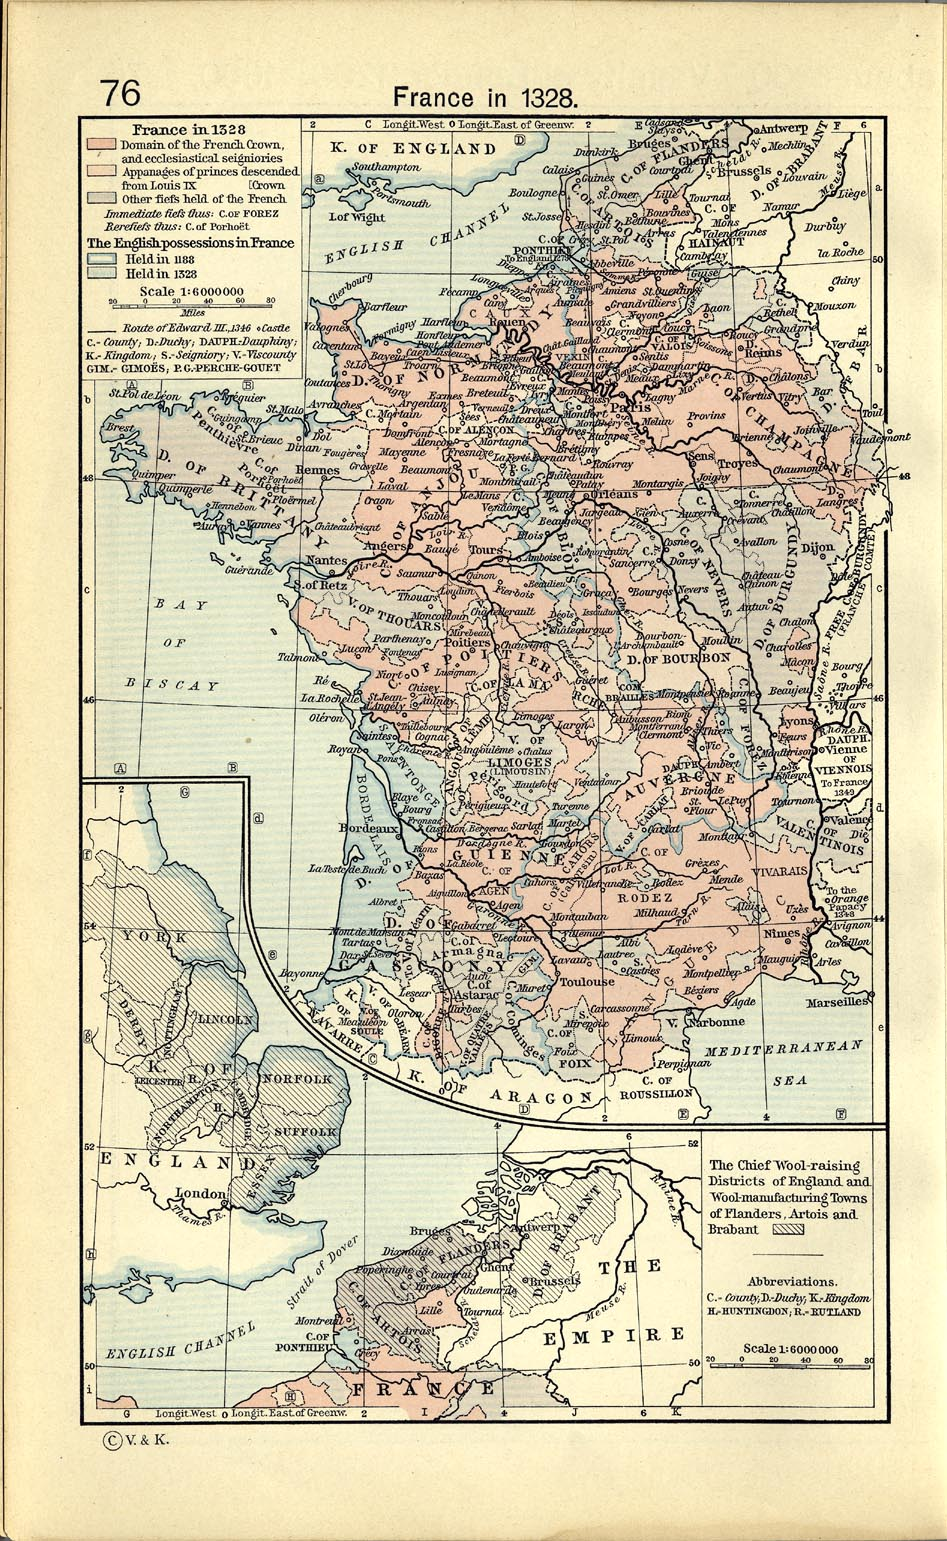 Map of France in 1328